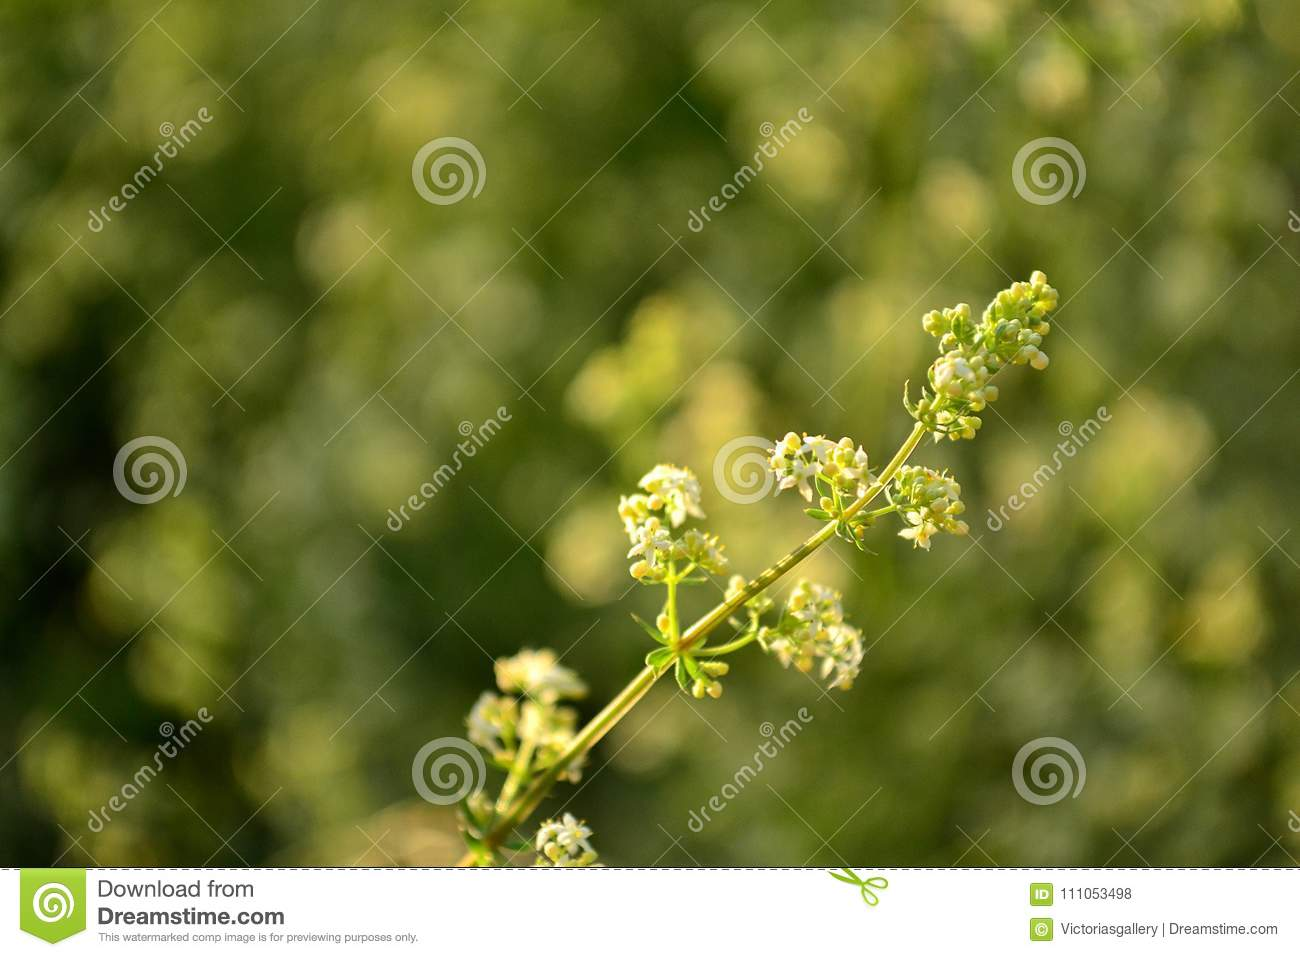 Delicate green white flowered plant stock photo image of green download comp mightylinksfo